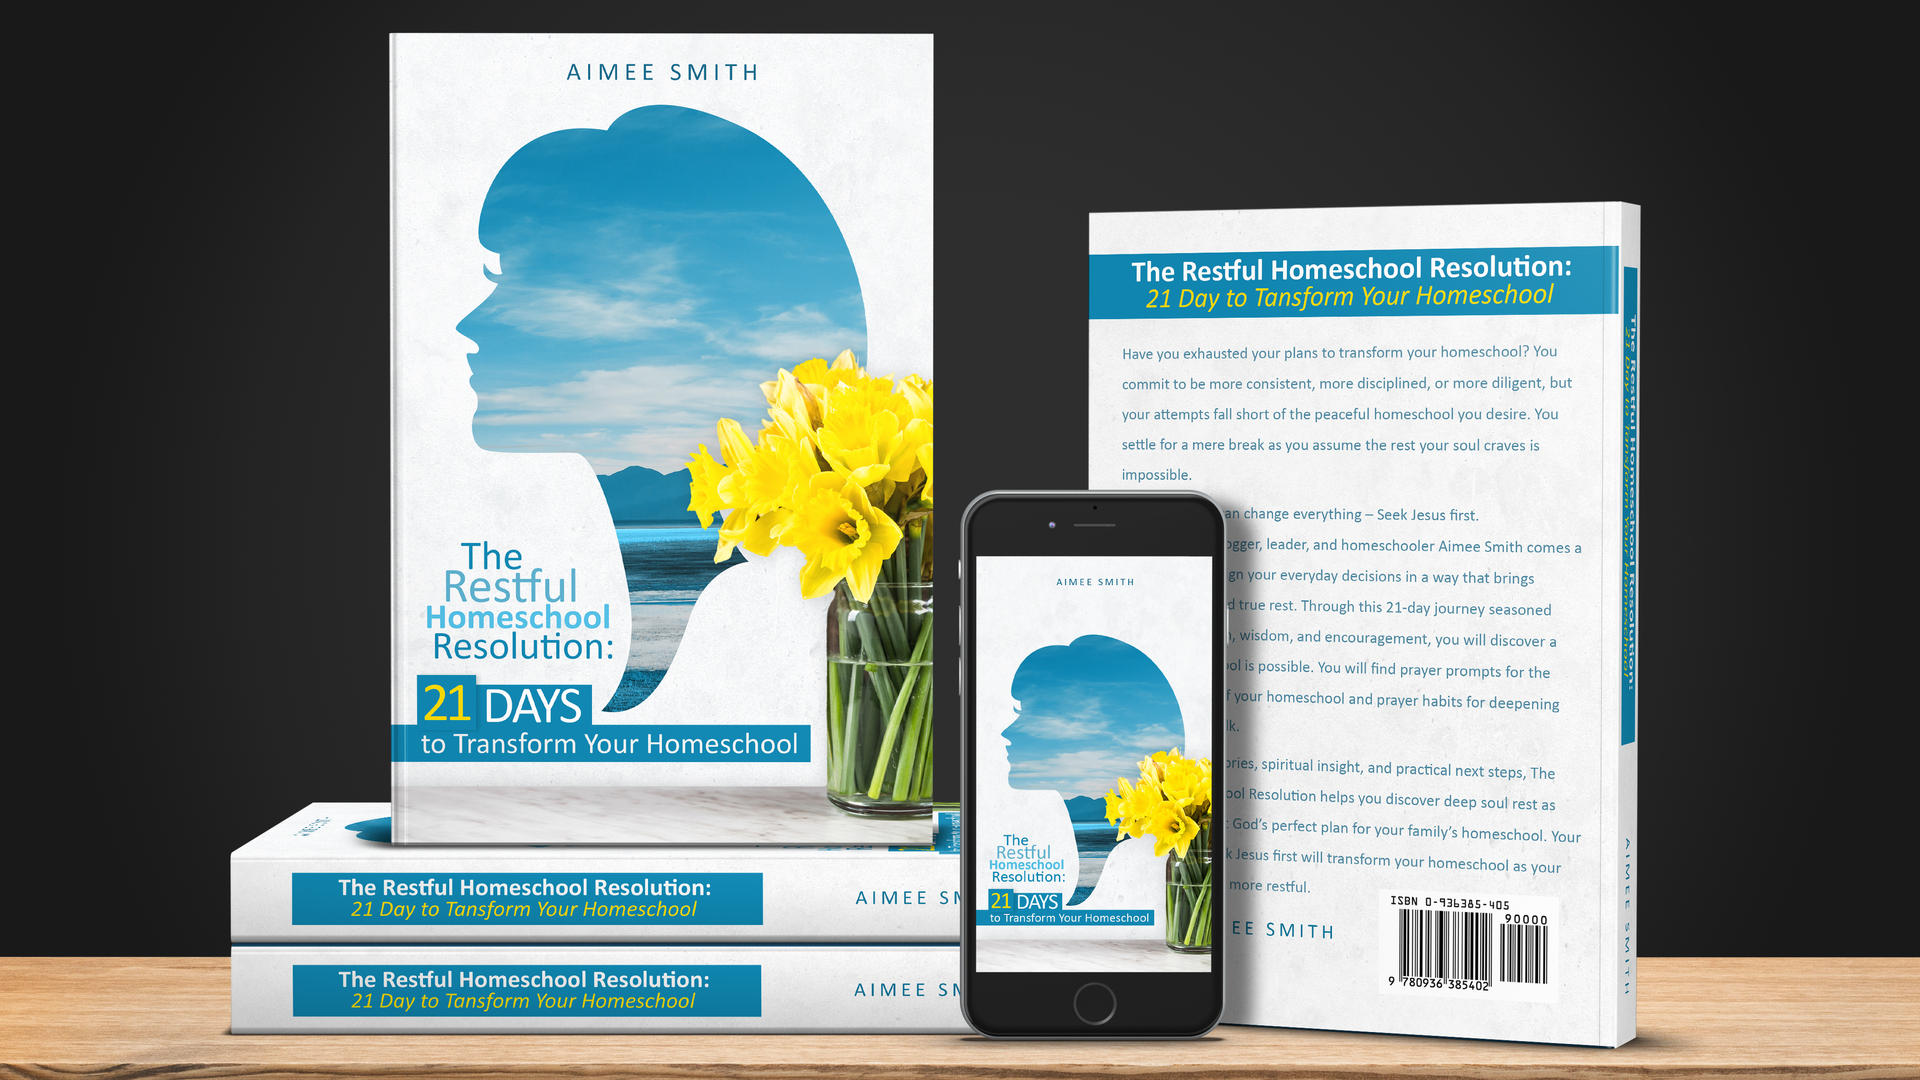 045-Book-Promo-Template-with-Phone-Eread